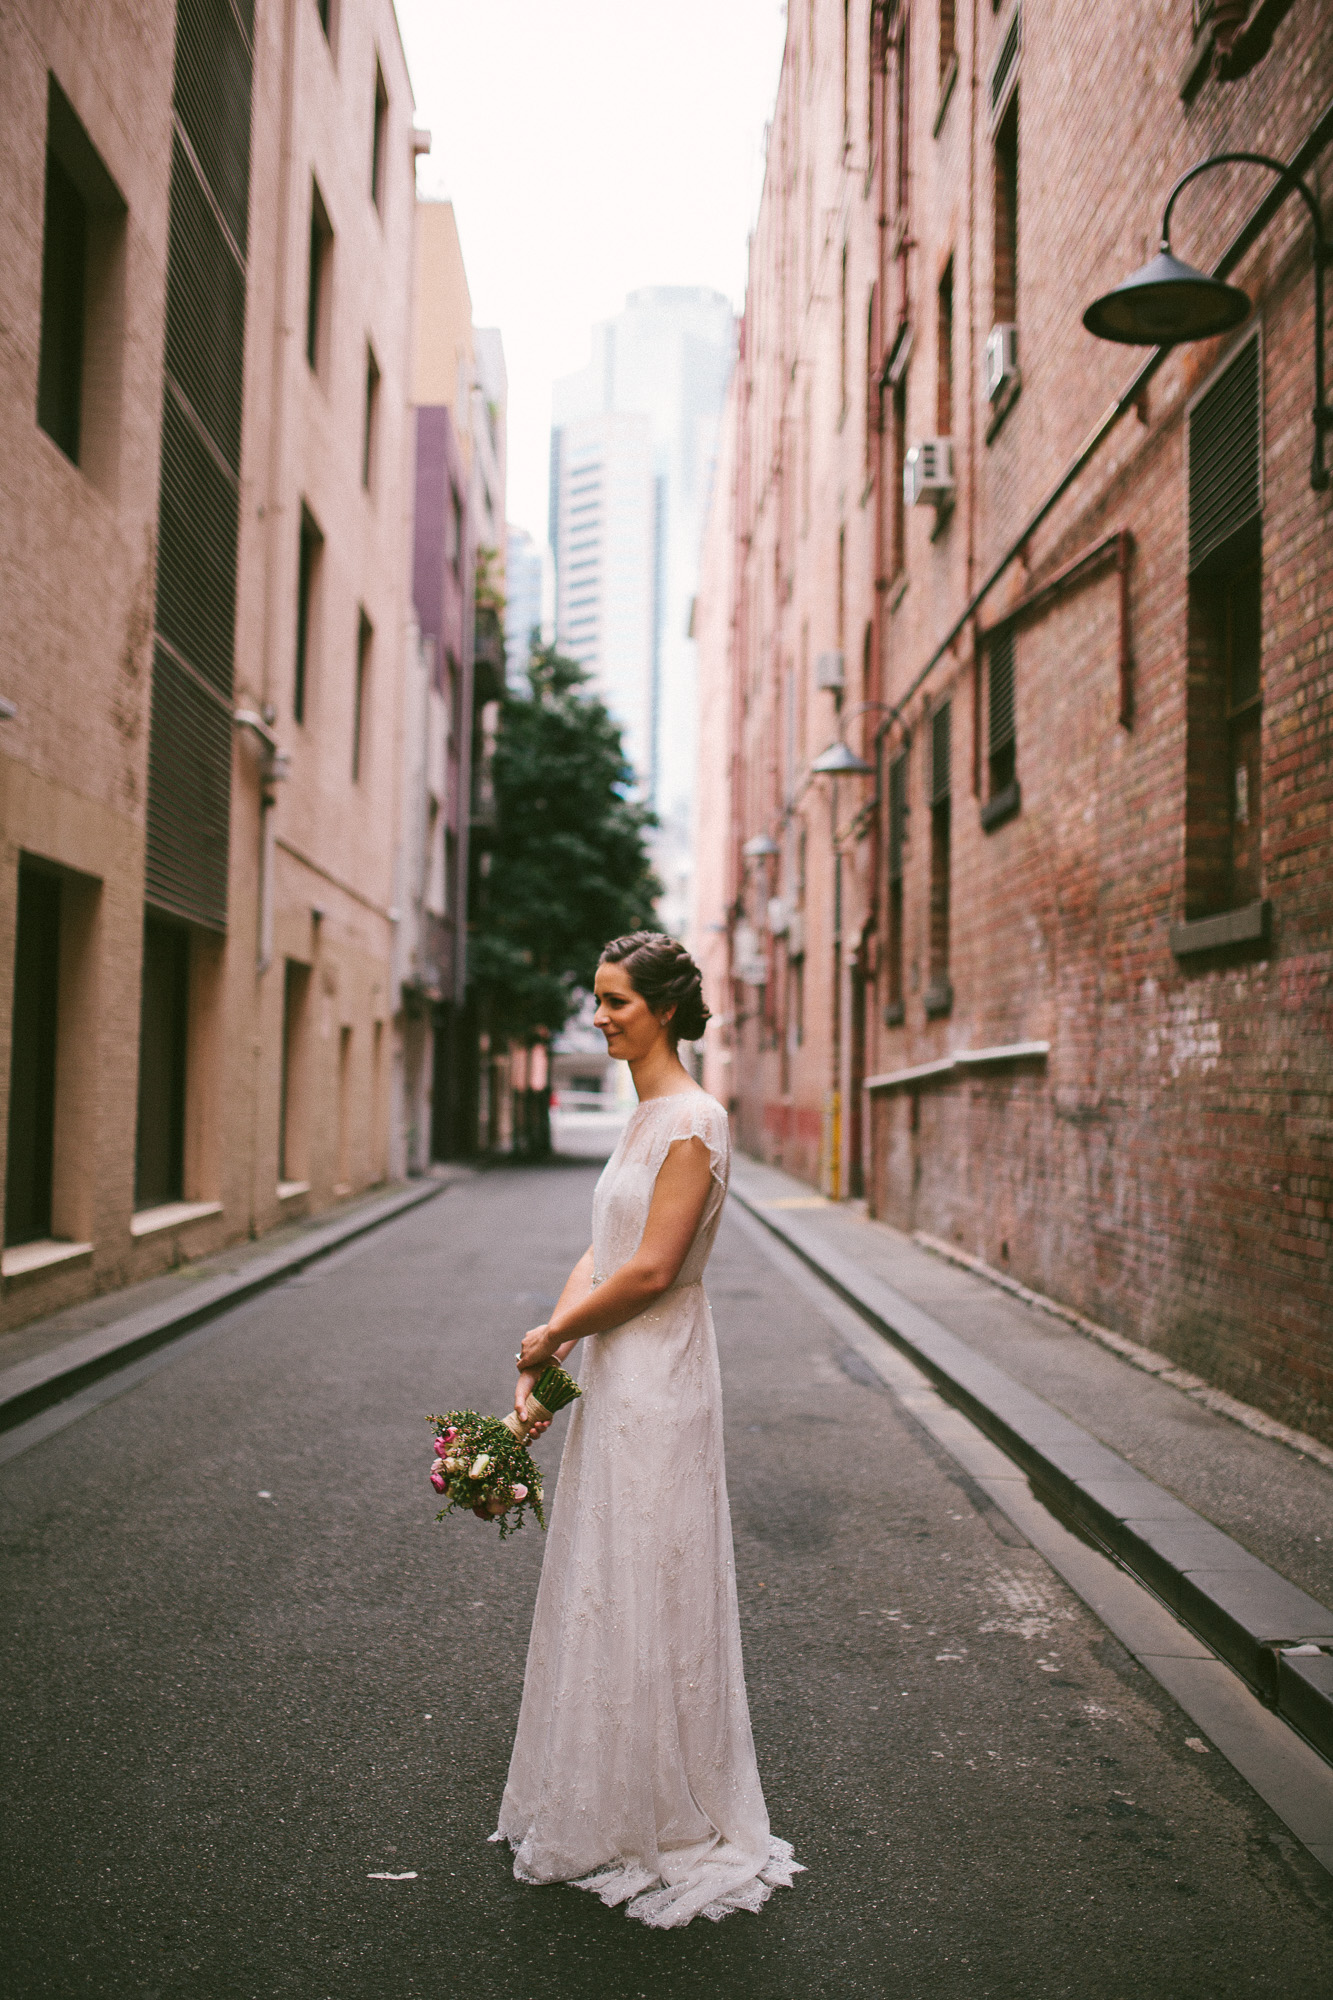 Jason-Charlotte-Melbourne-Quirky-Urban-Alternative-Wedding-Photography-33